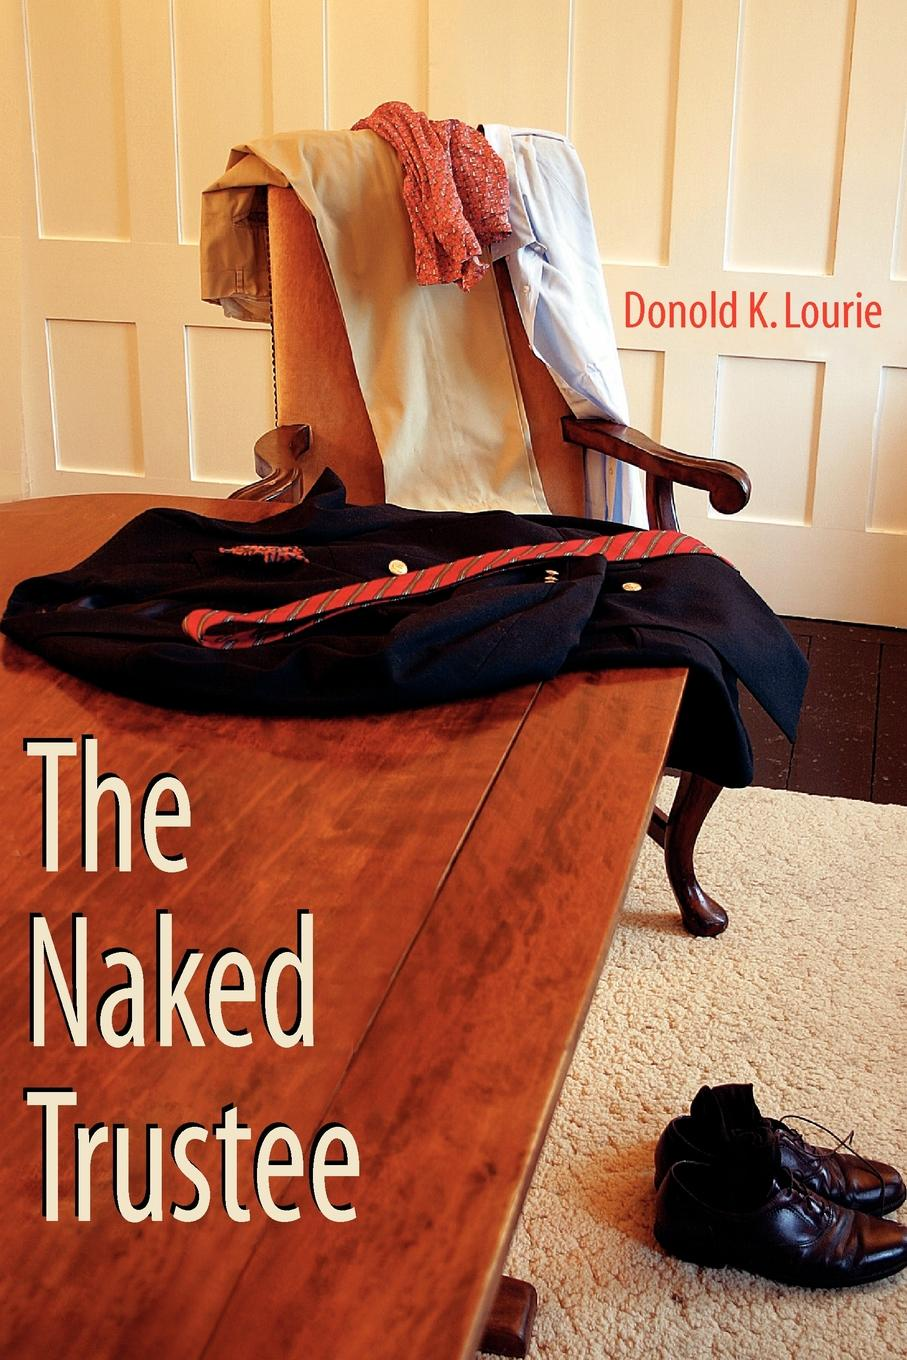 Donold K. Lourie The Naked Trustee naked edge